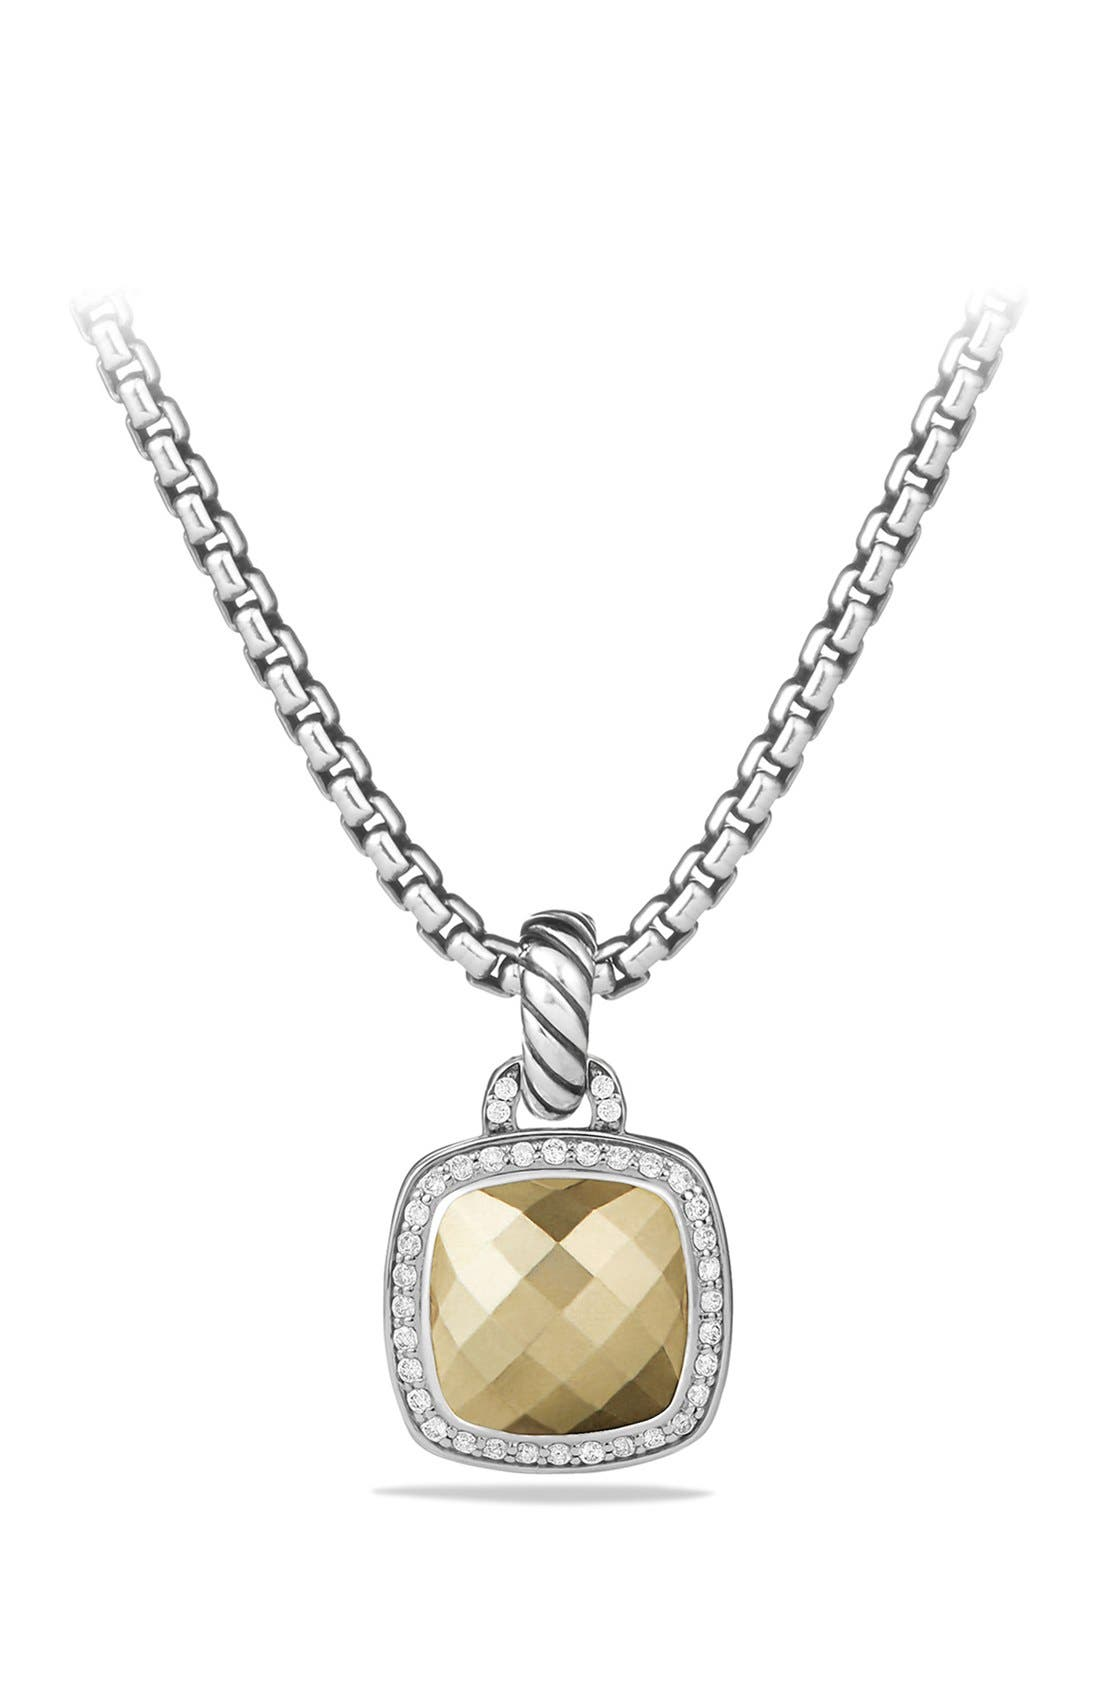 Alternate Image 1 Selected - David Yurman 'Albion' Pendant with Gold Dome and Diamonds